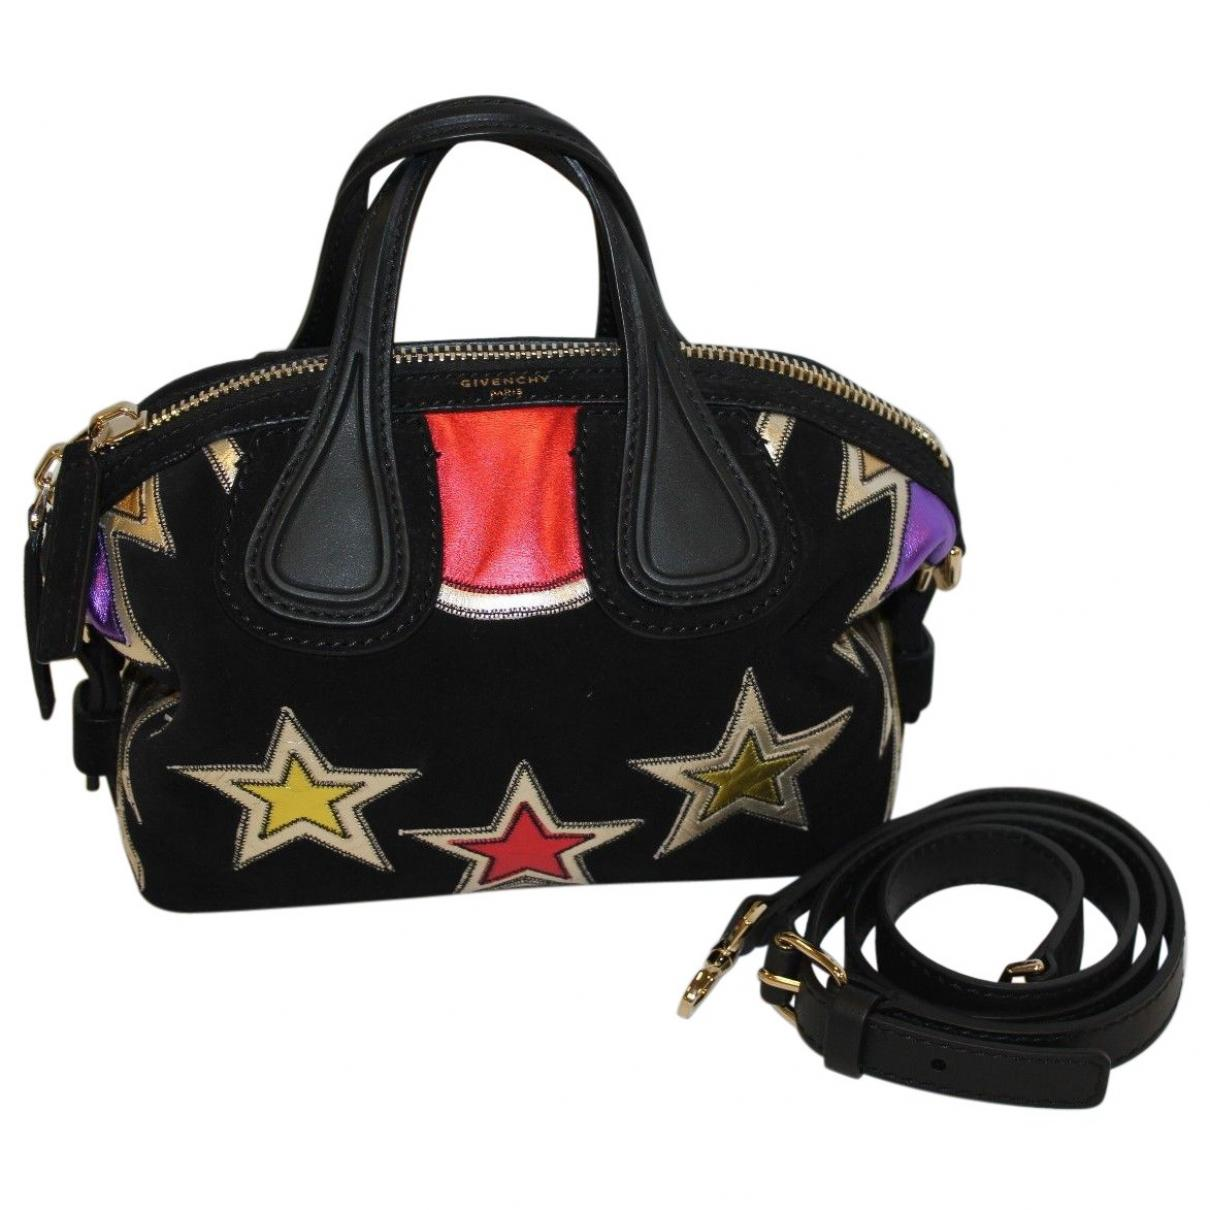 Lyst - Givenchy Pre-owned Nightingale Mini Bag in Black 1a06db5ae10ce